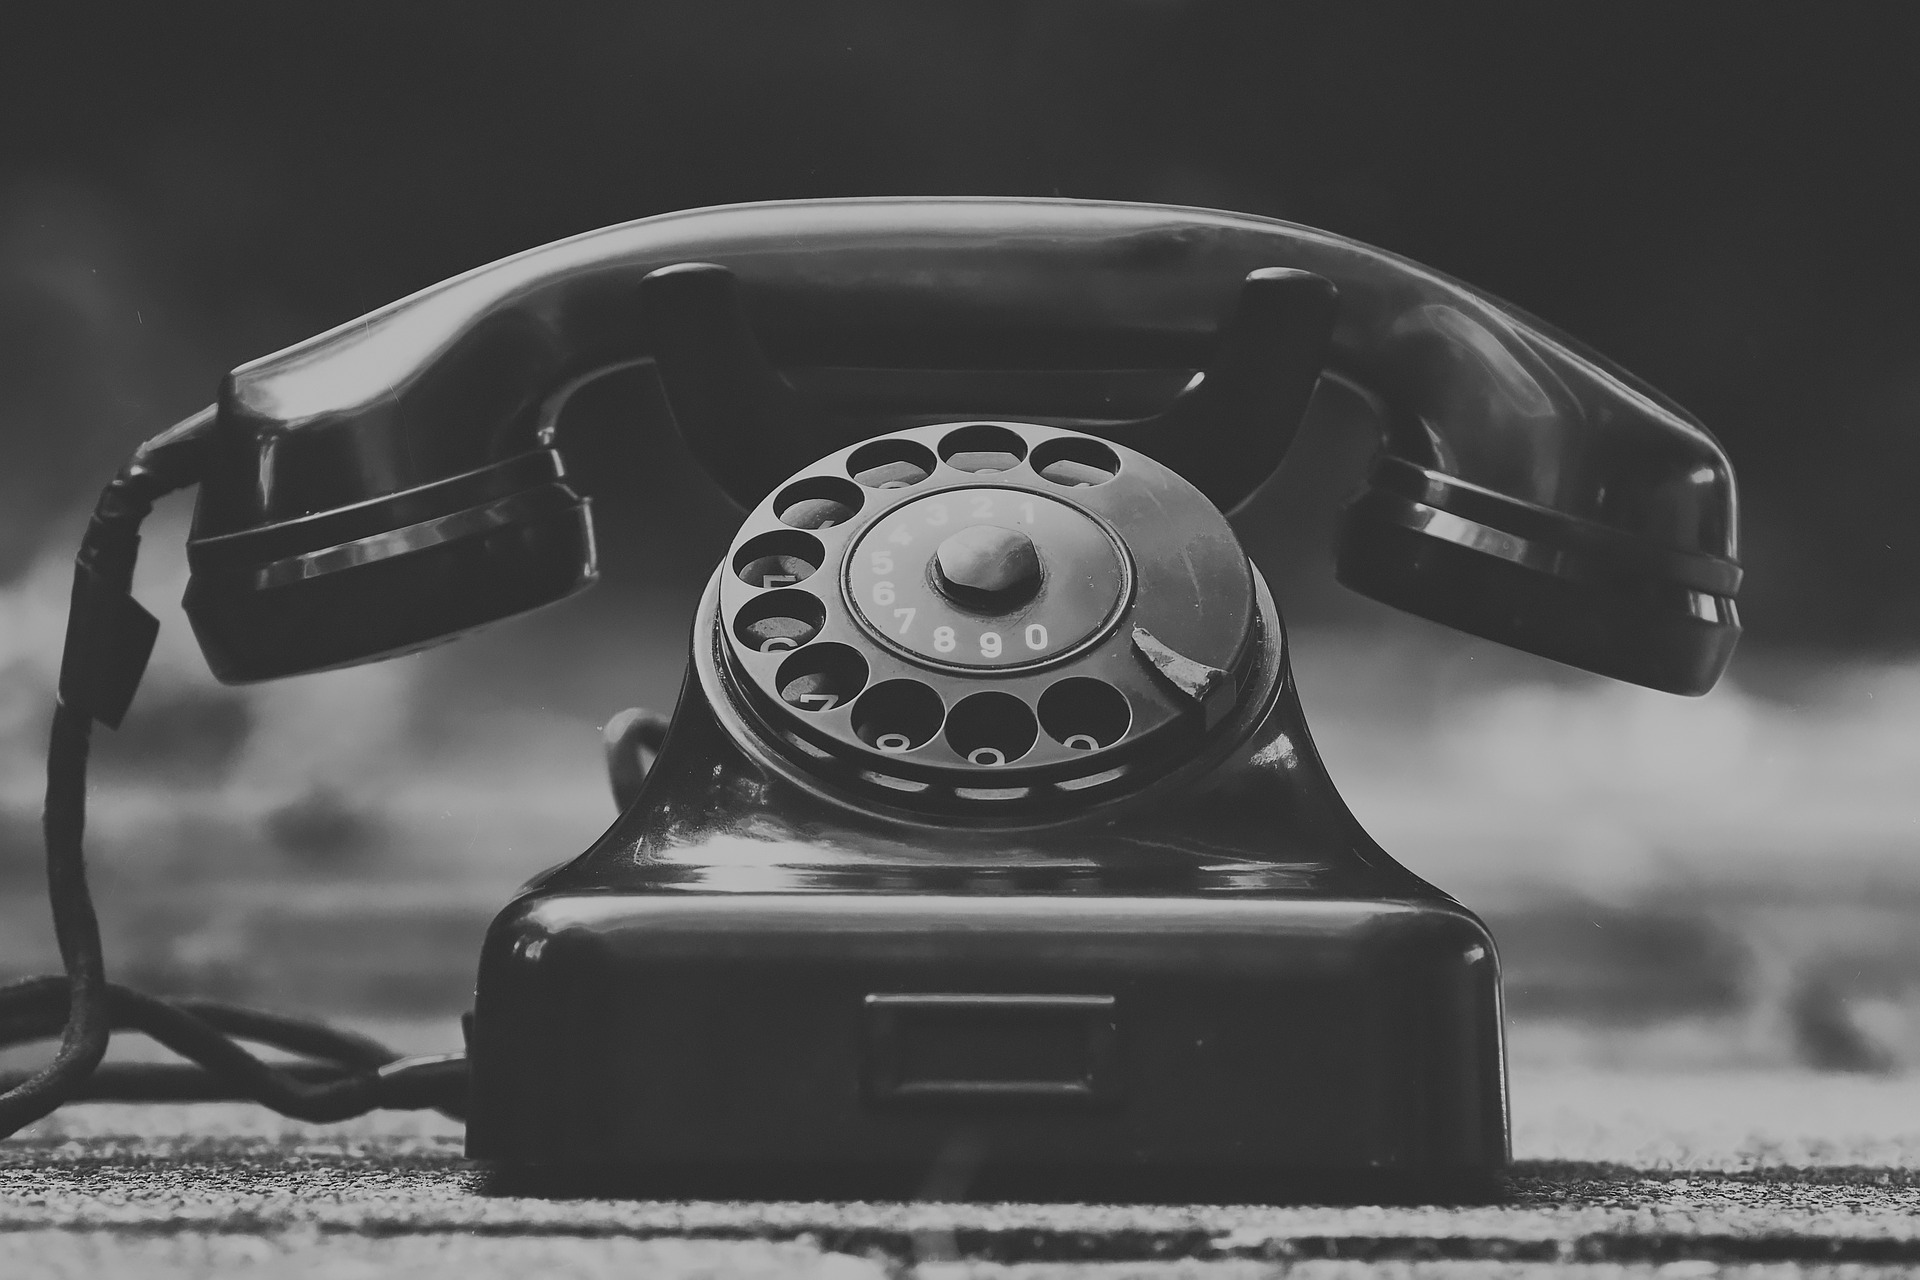 Call a loved one once a week. Pictured: Black and white photo of old landline phone.